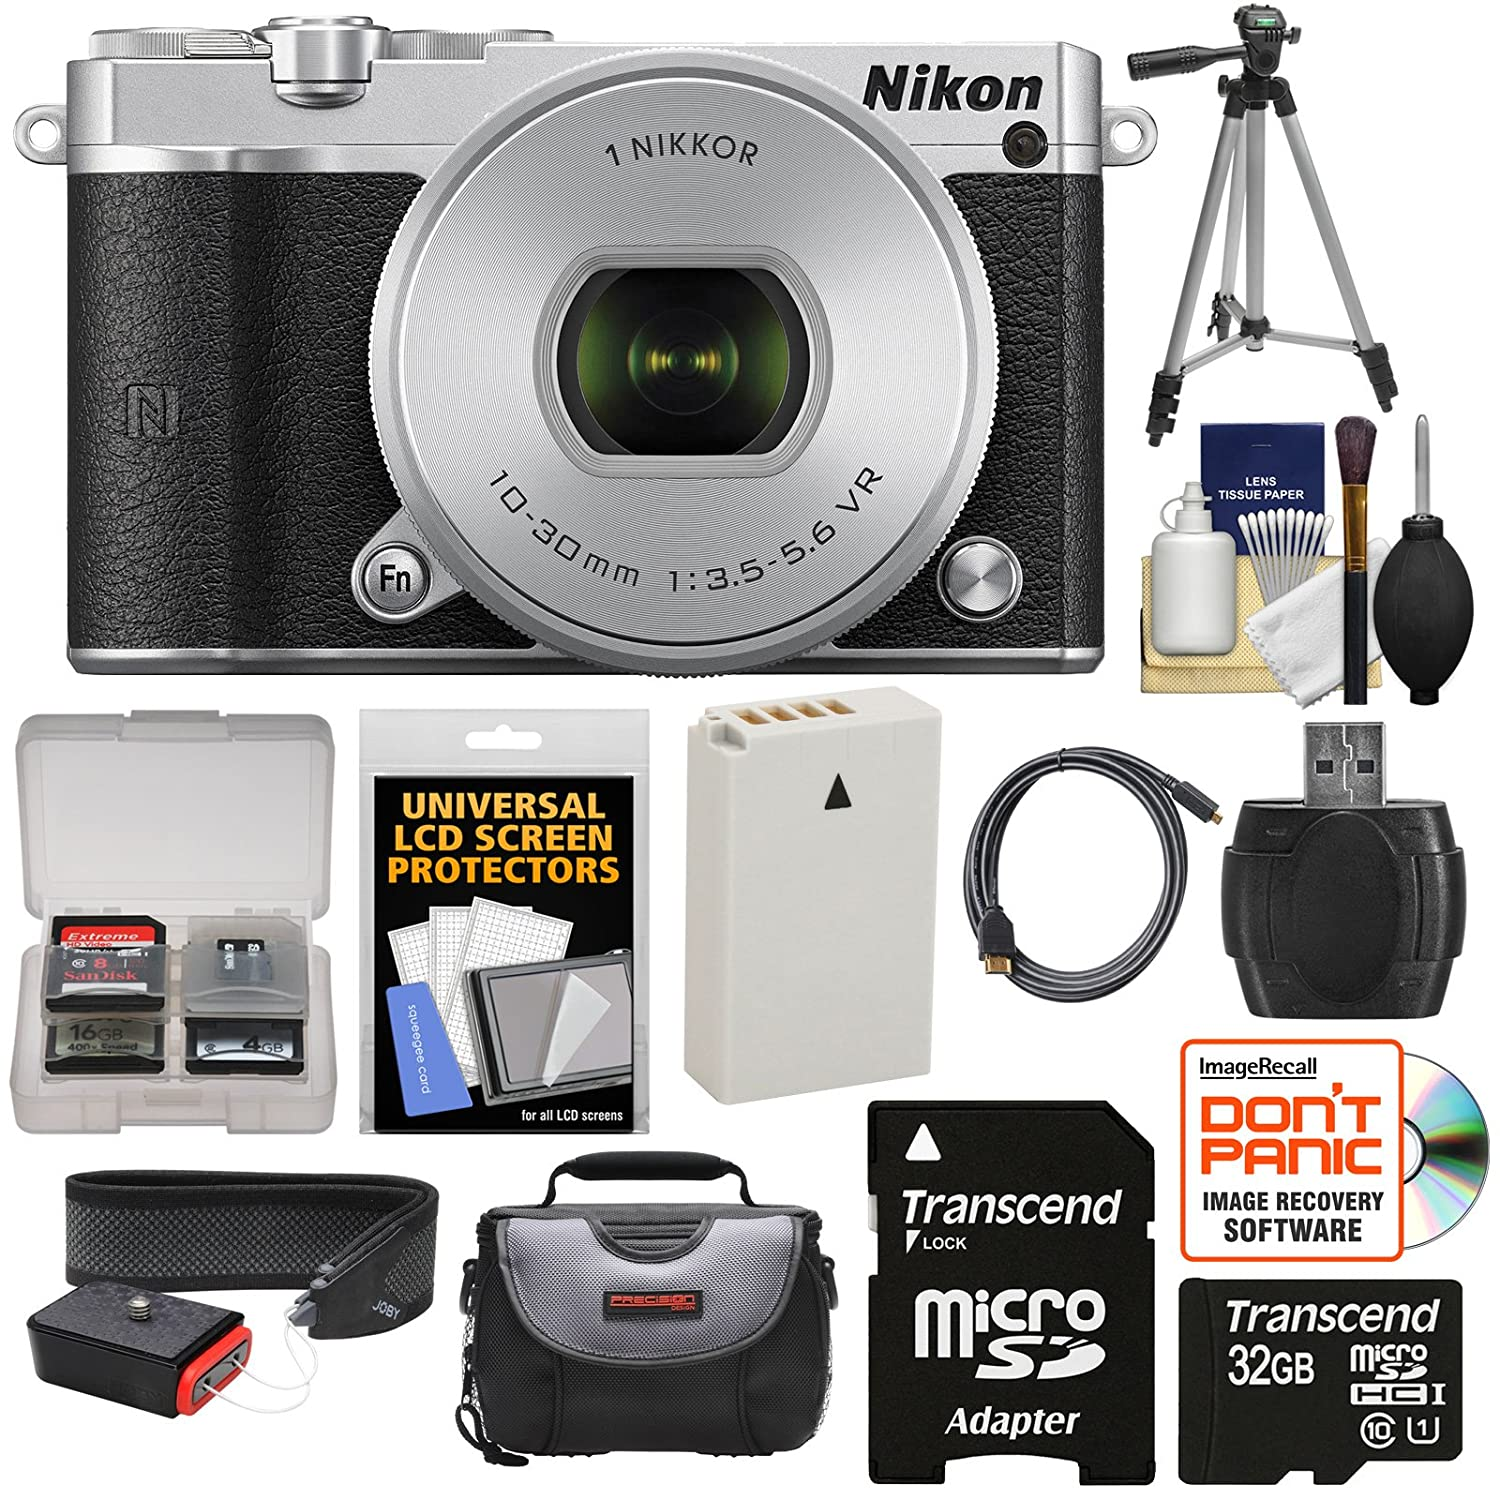 Nikon 1 J5 Wi-Fi Digital Camera & 10-30mm Lens (Silver) with 32GB Card + Battery + Strap + Case + Tripod + Kit